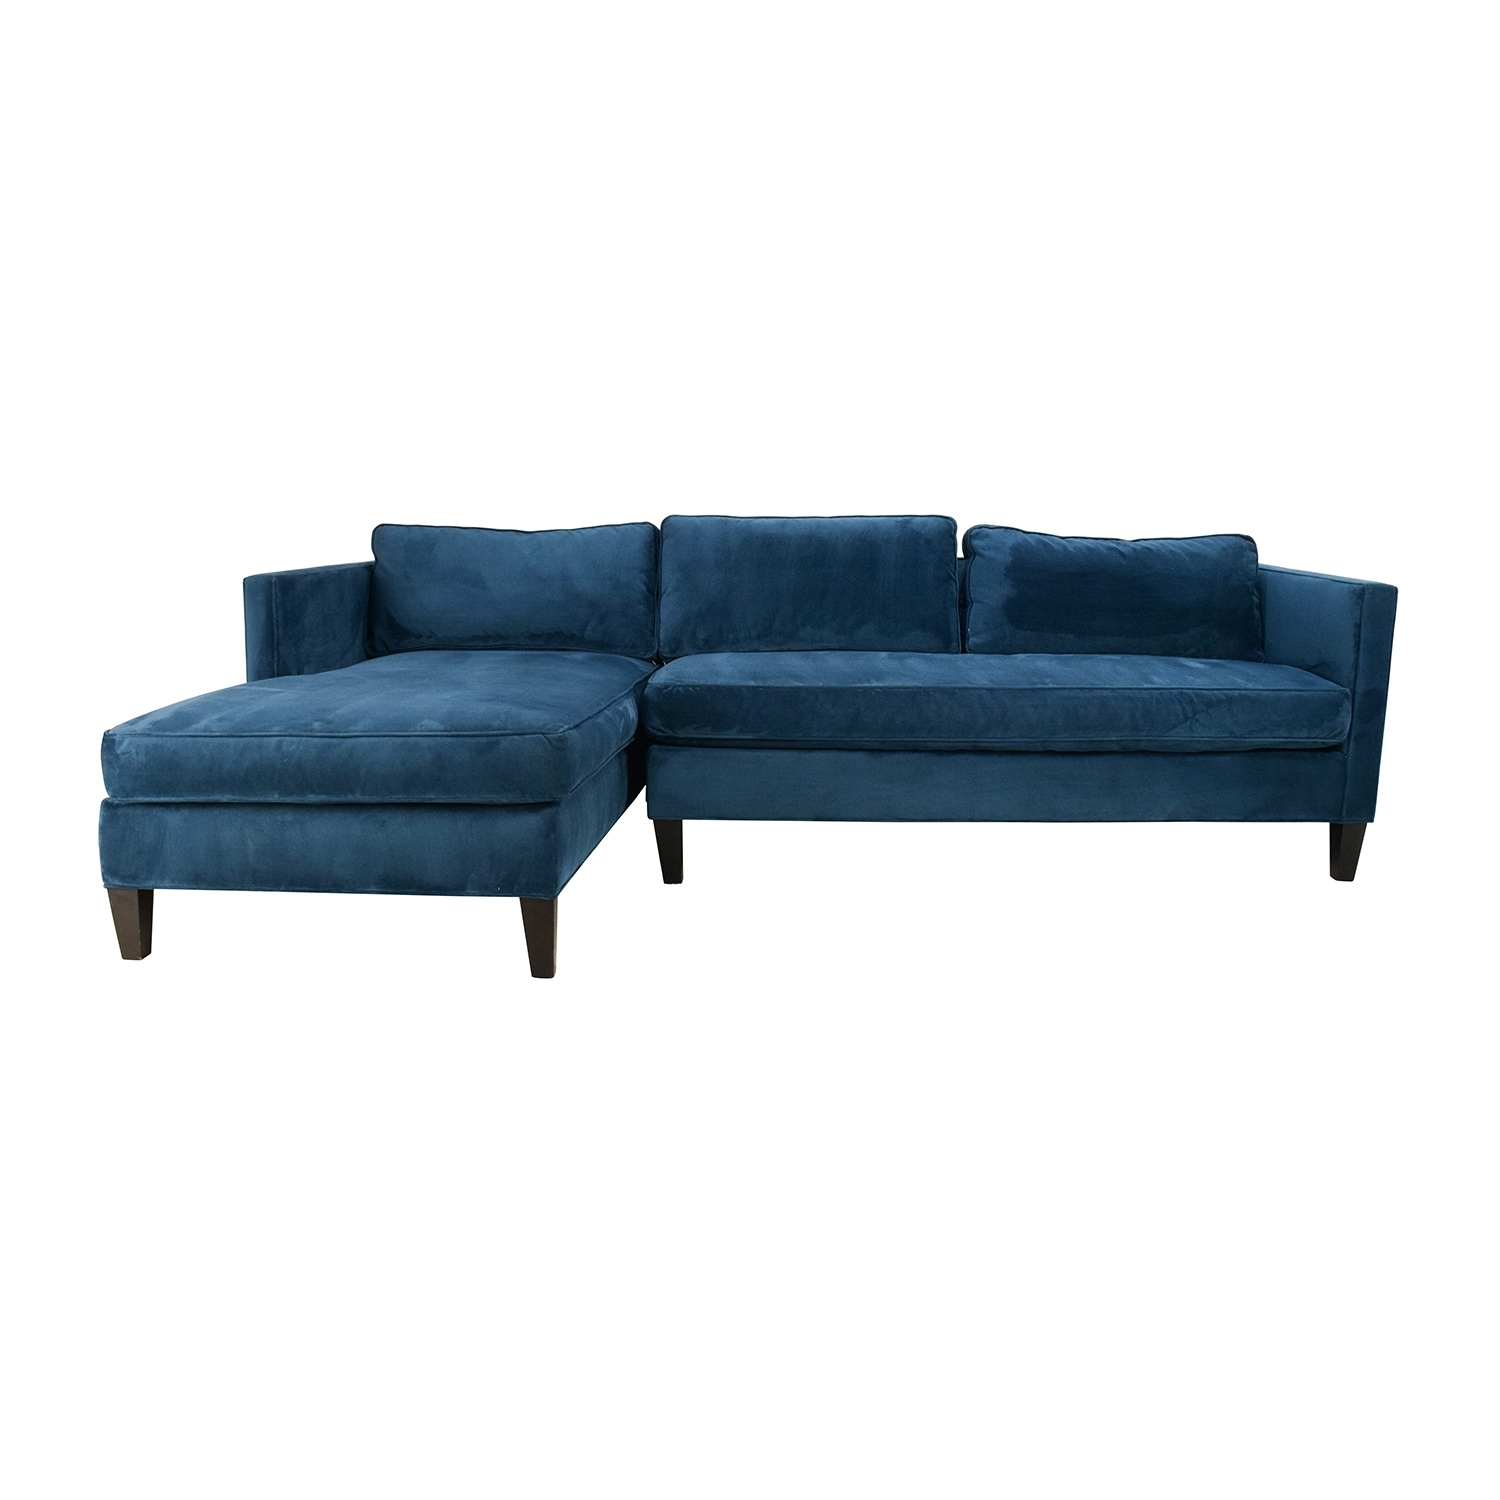 67% Off – West Elm West Elm Dunham Sectional Sofa / Sofas With Regard To West Elm Sectional Sofas (Photo 10 of 10)